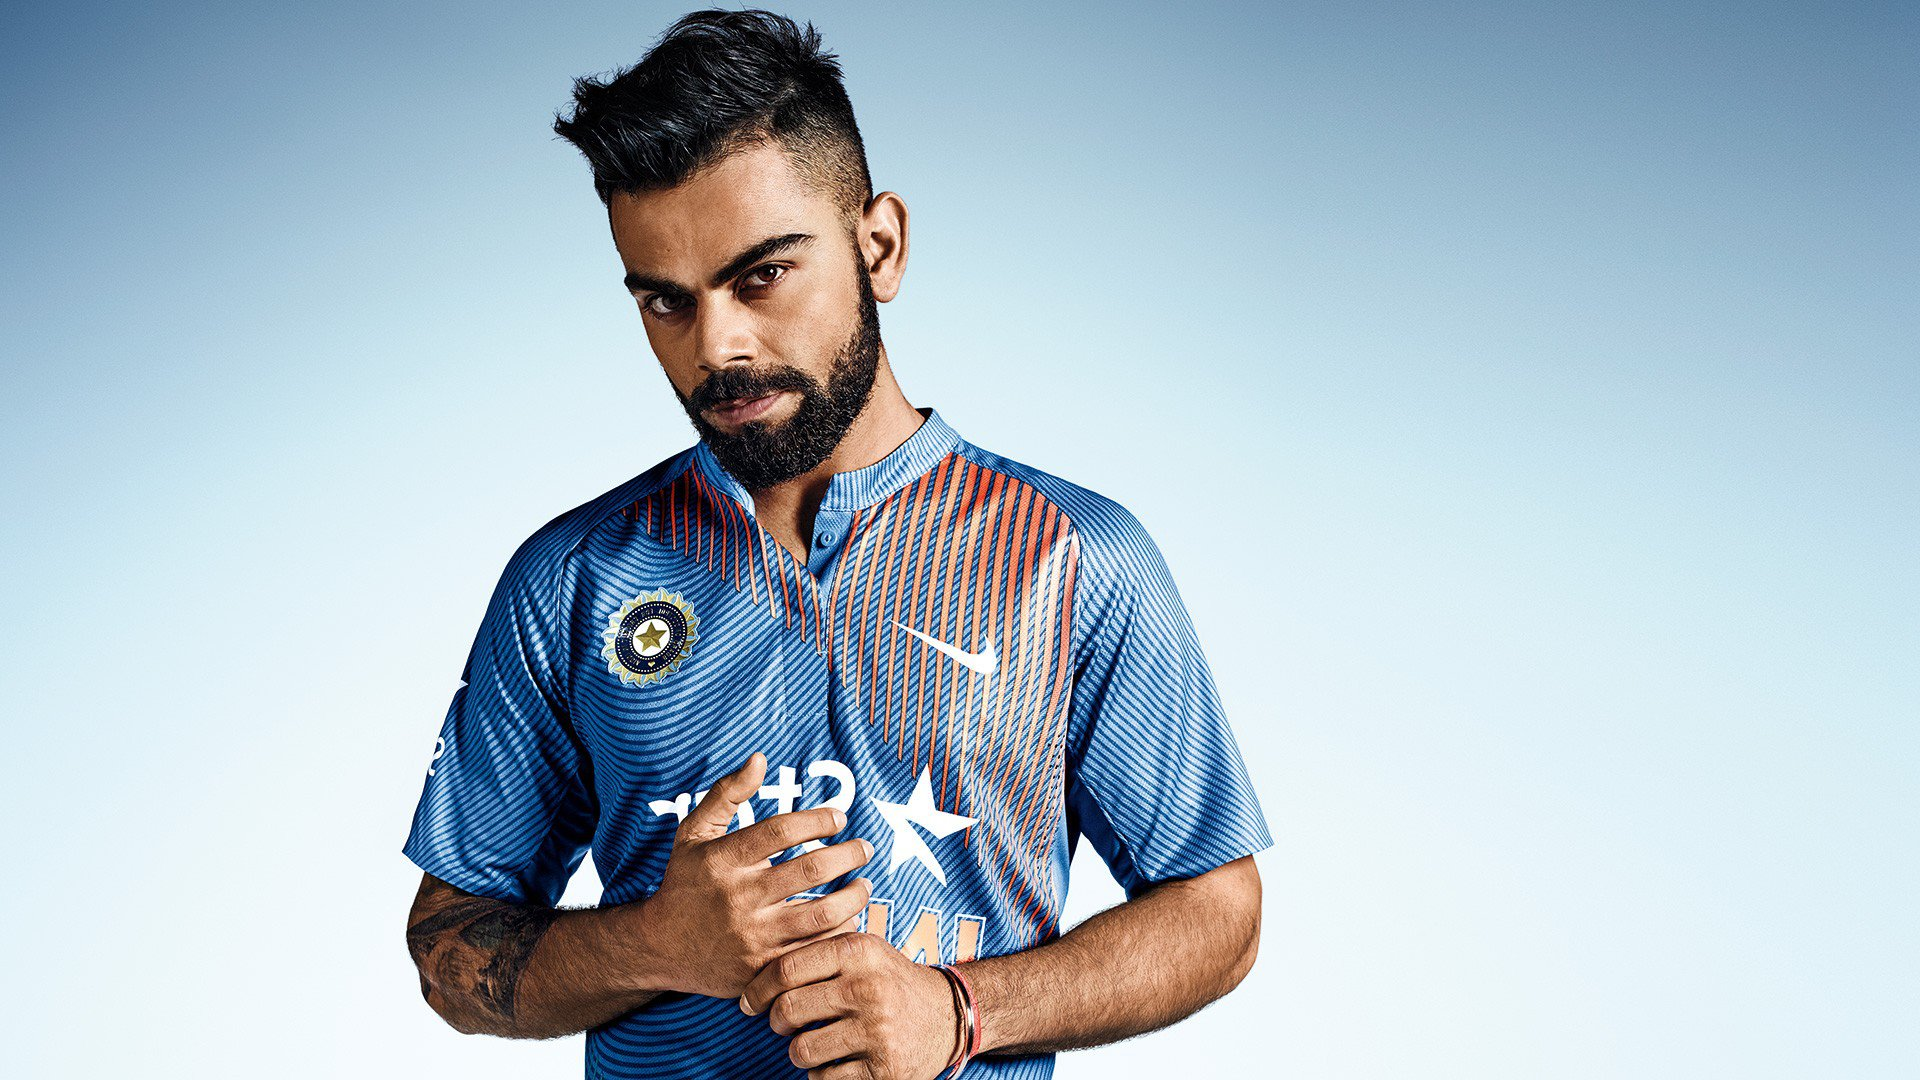 Virat Kohli Hd Sports 4k Wallpapers Images Backgrounds Photos